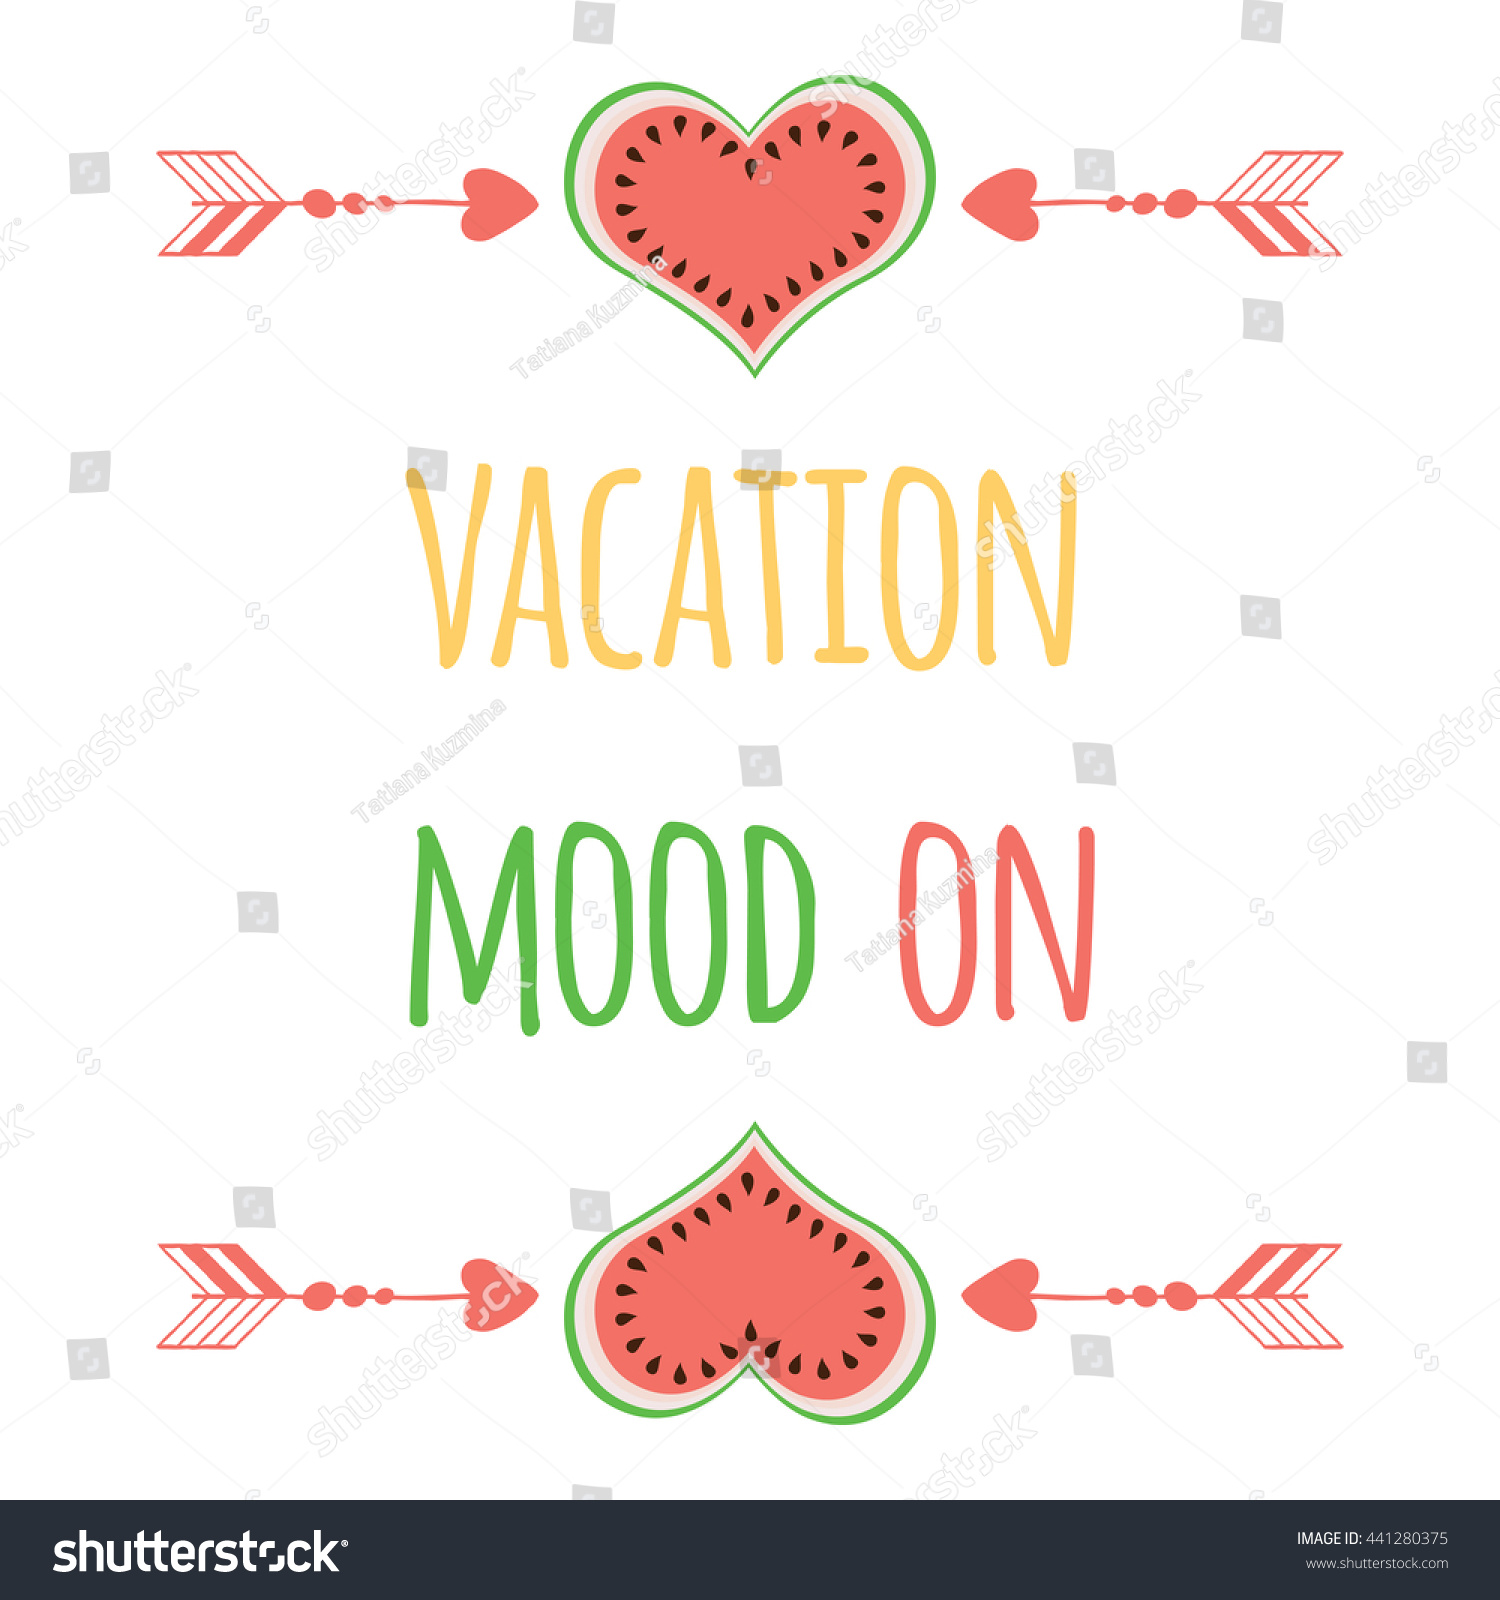 Cute Summer Quote Watermelon Saying Vacation Stock Vector Royalty